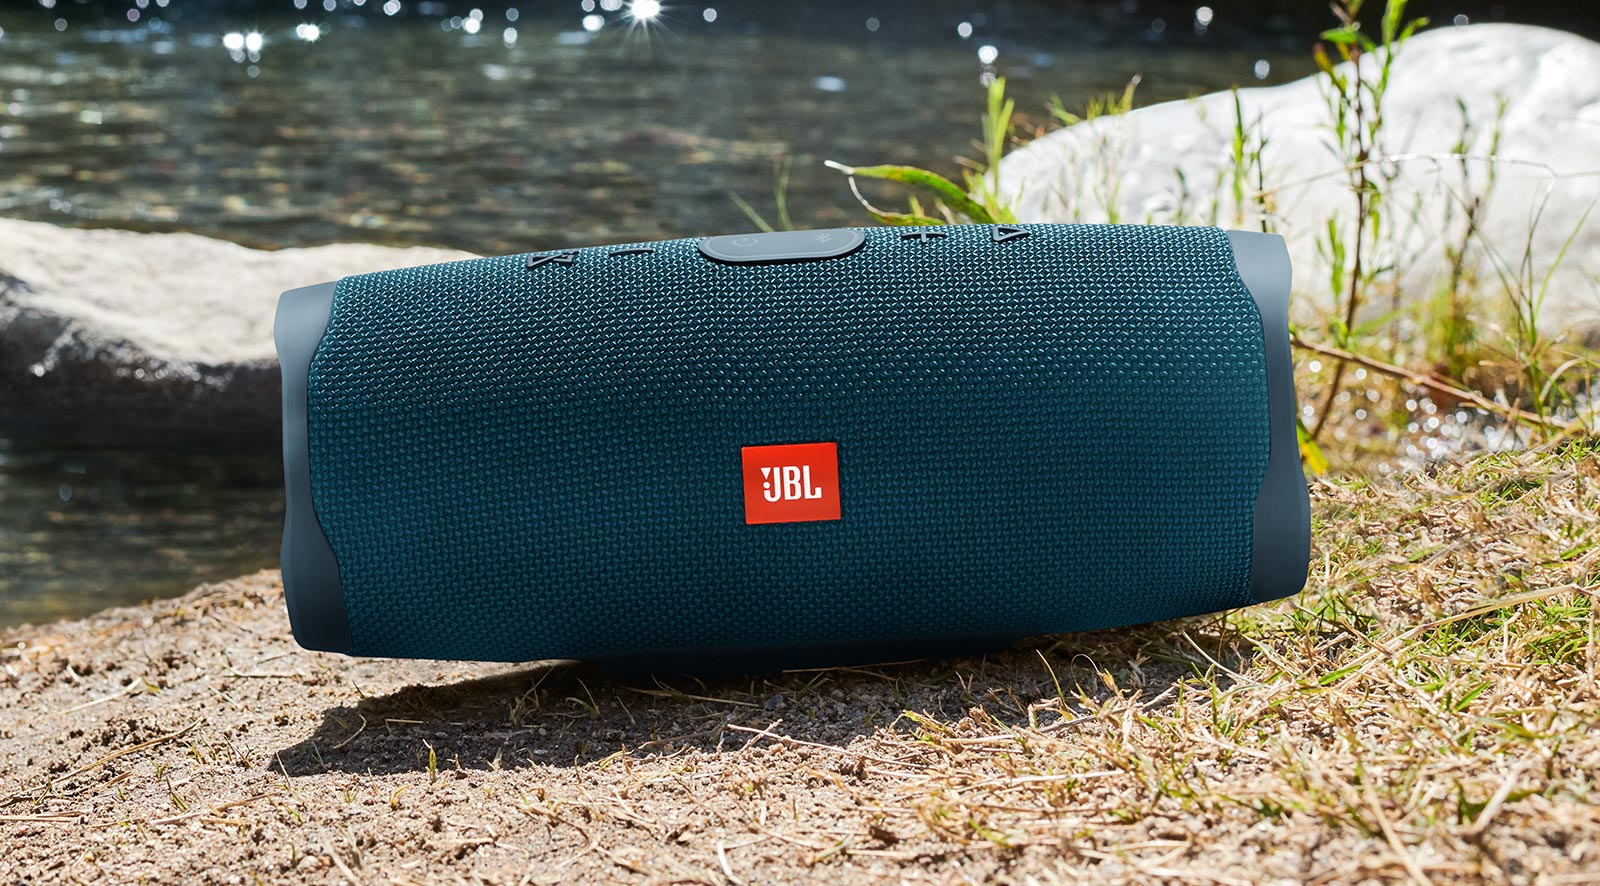 JBL's latest speakers are made for partying – Pickr